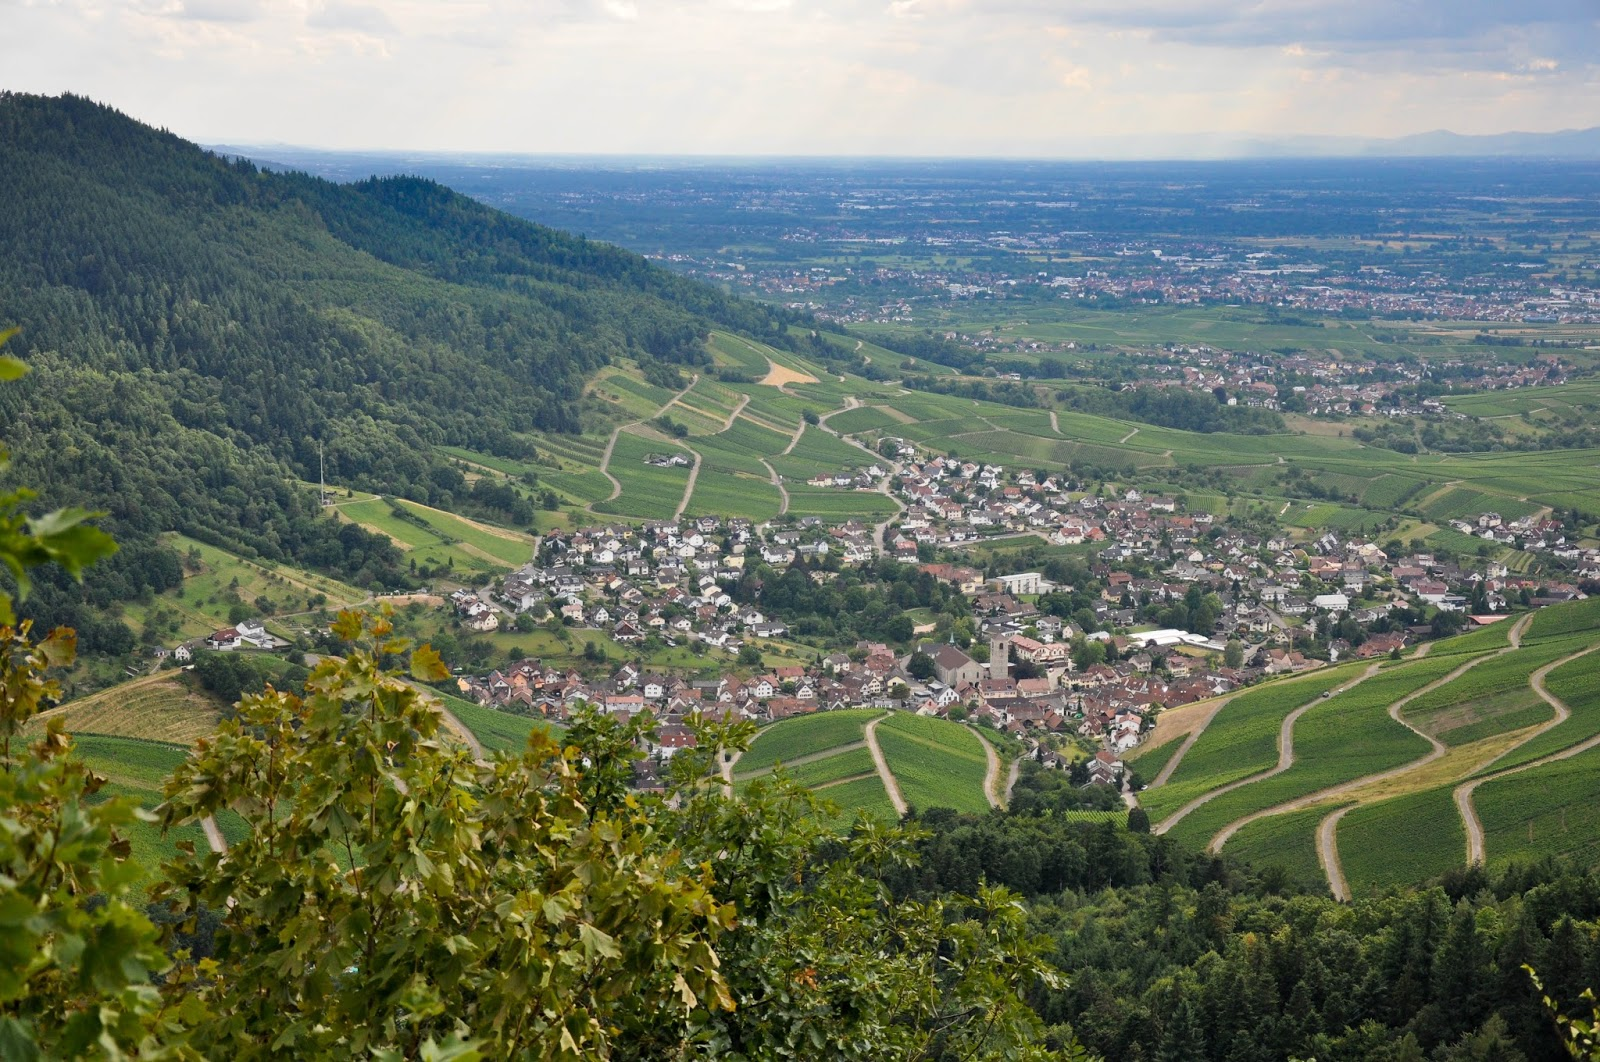 The Black Forest and the Rhine valley seen from the Yburg Castle, Germany